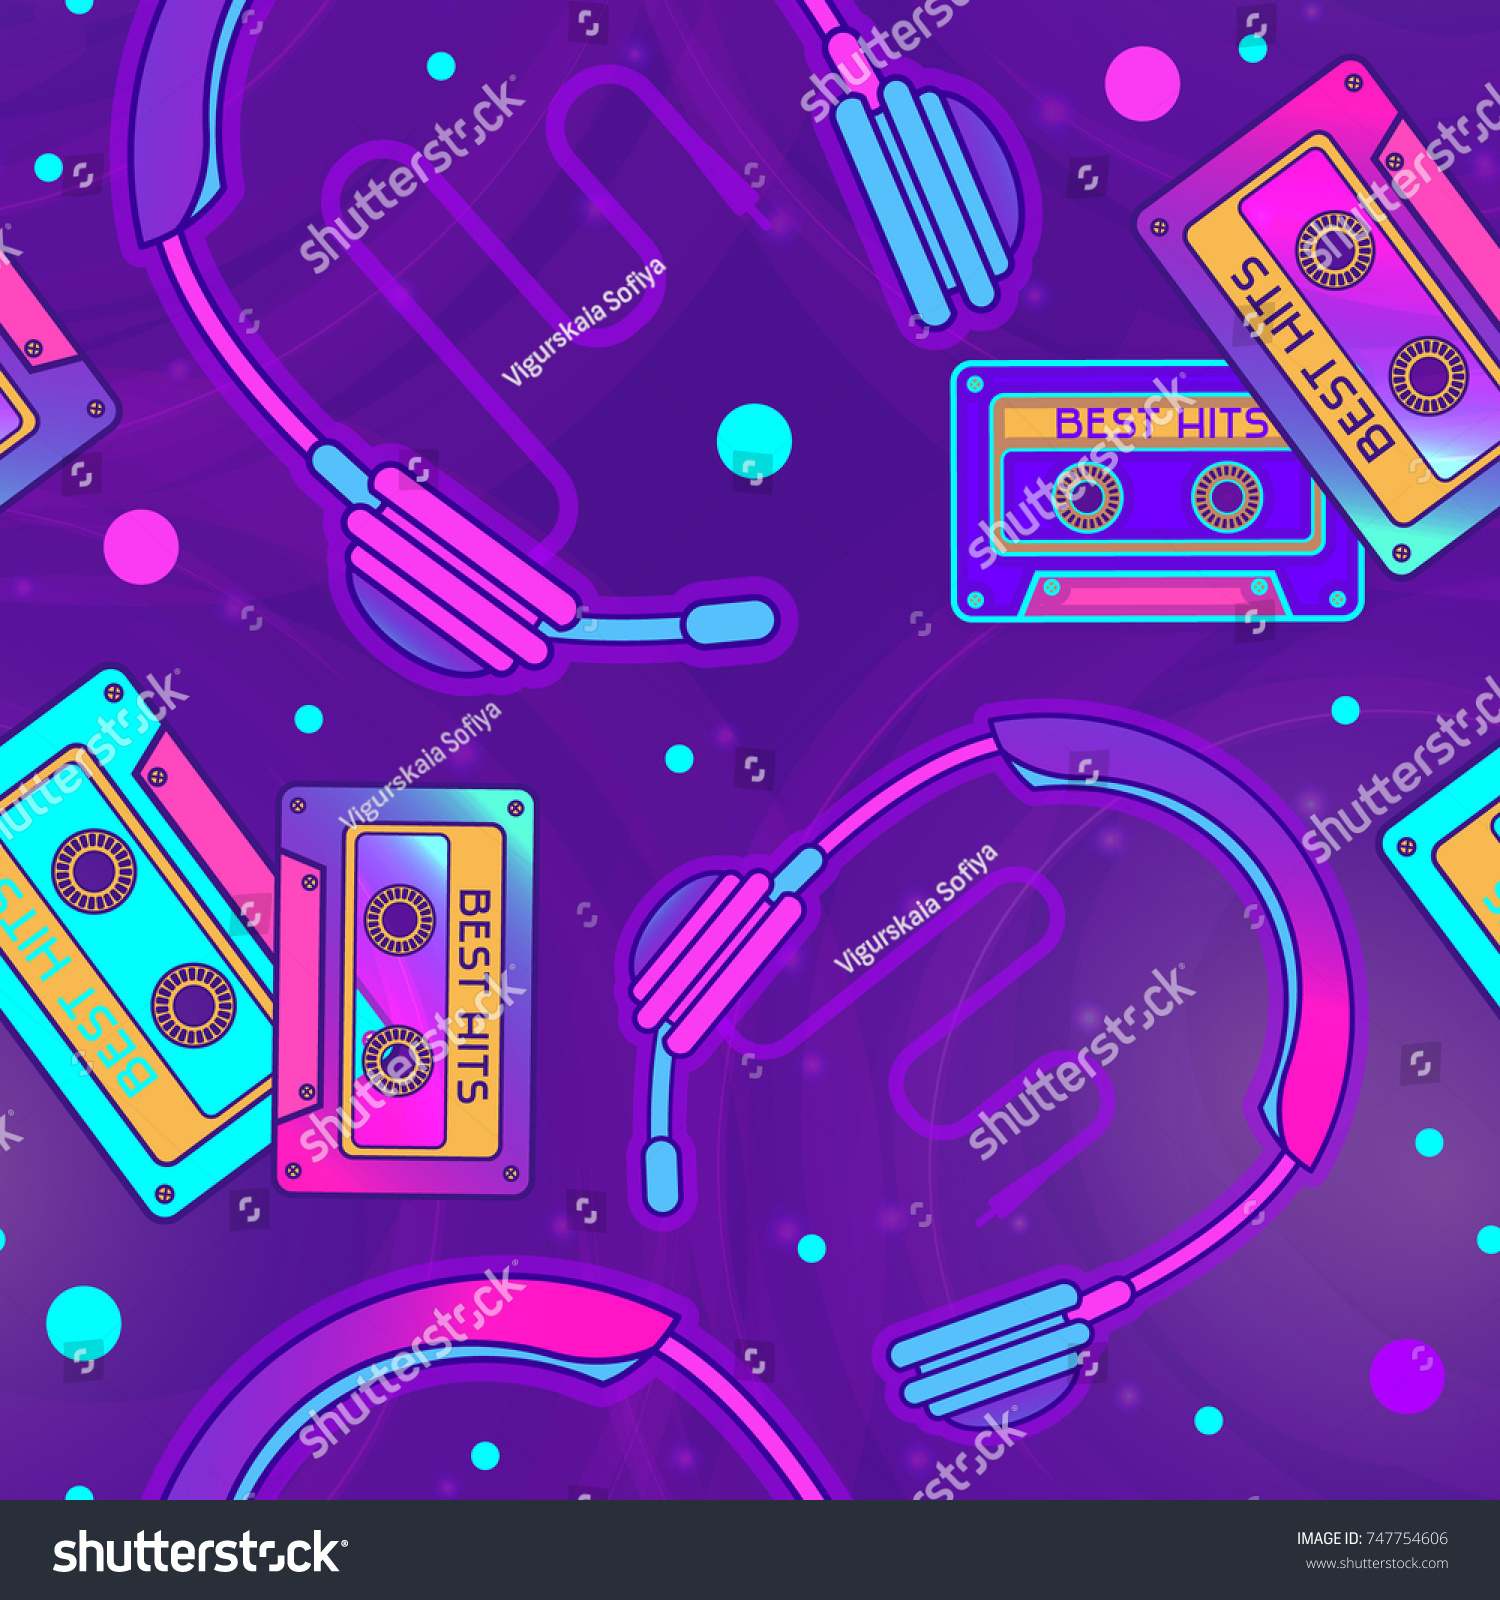 Retro Pop Eighties Radio Seamless Pattern 747754606